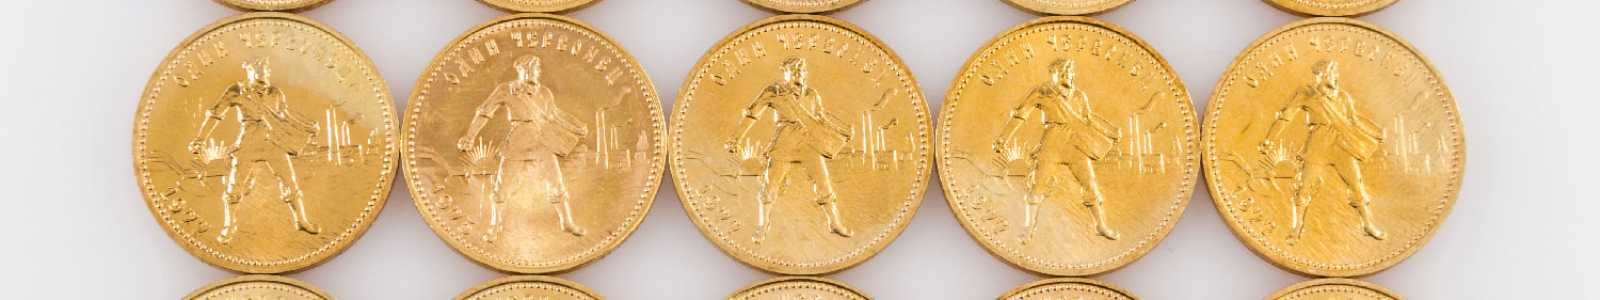 COINS, STAMPS, MEDALS, HISTORIKA